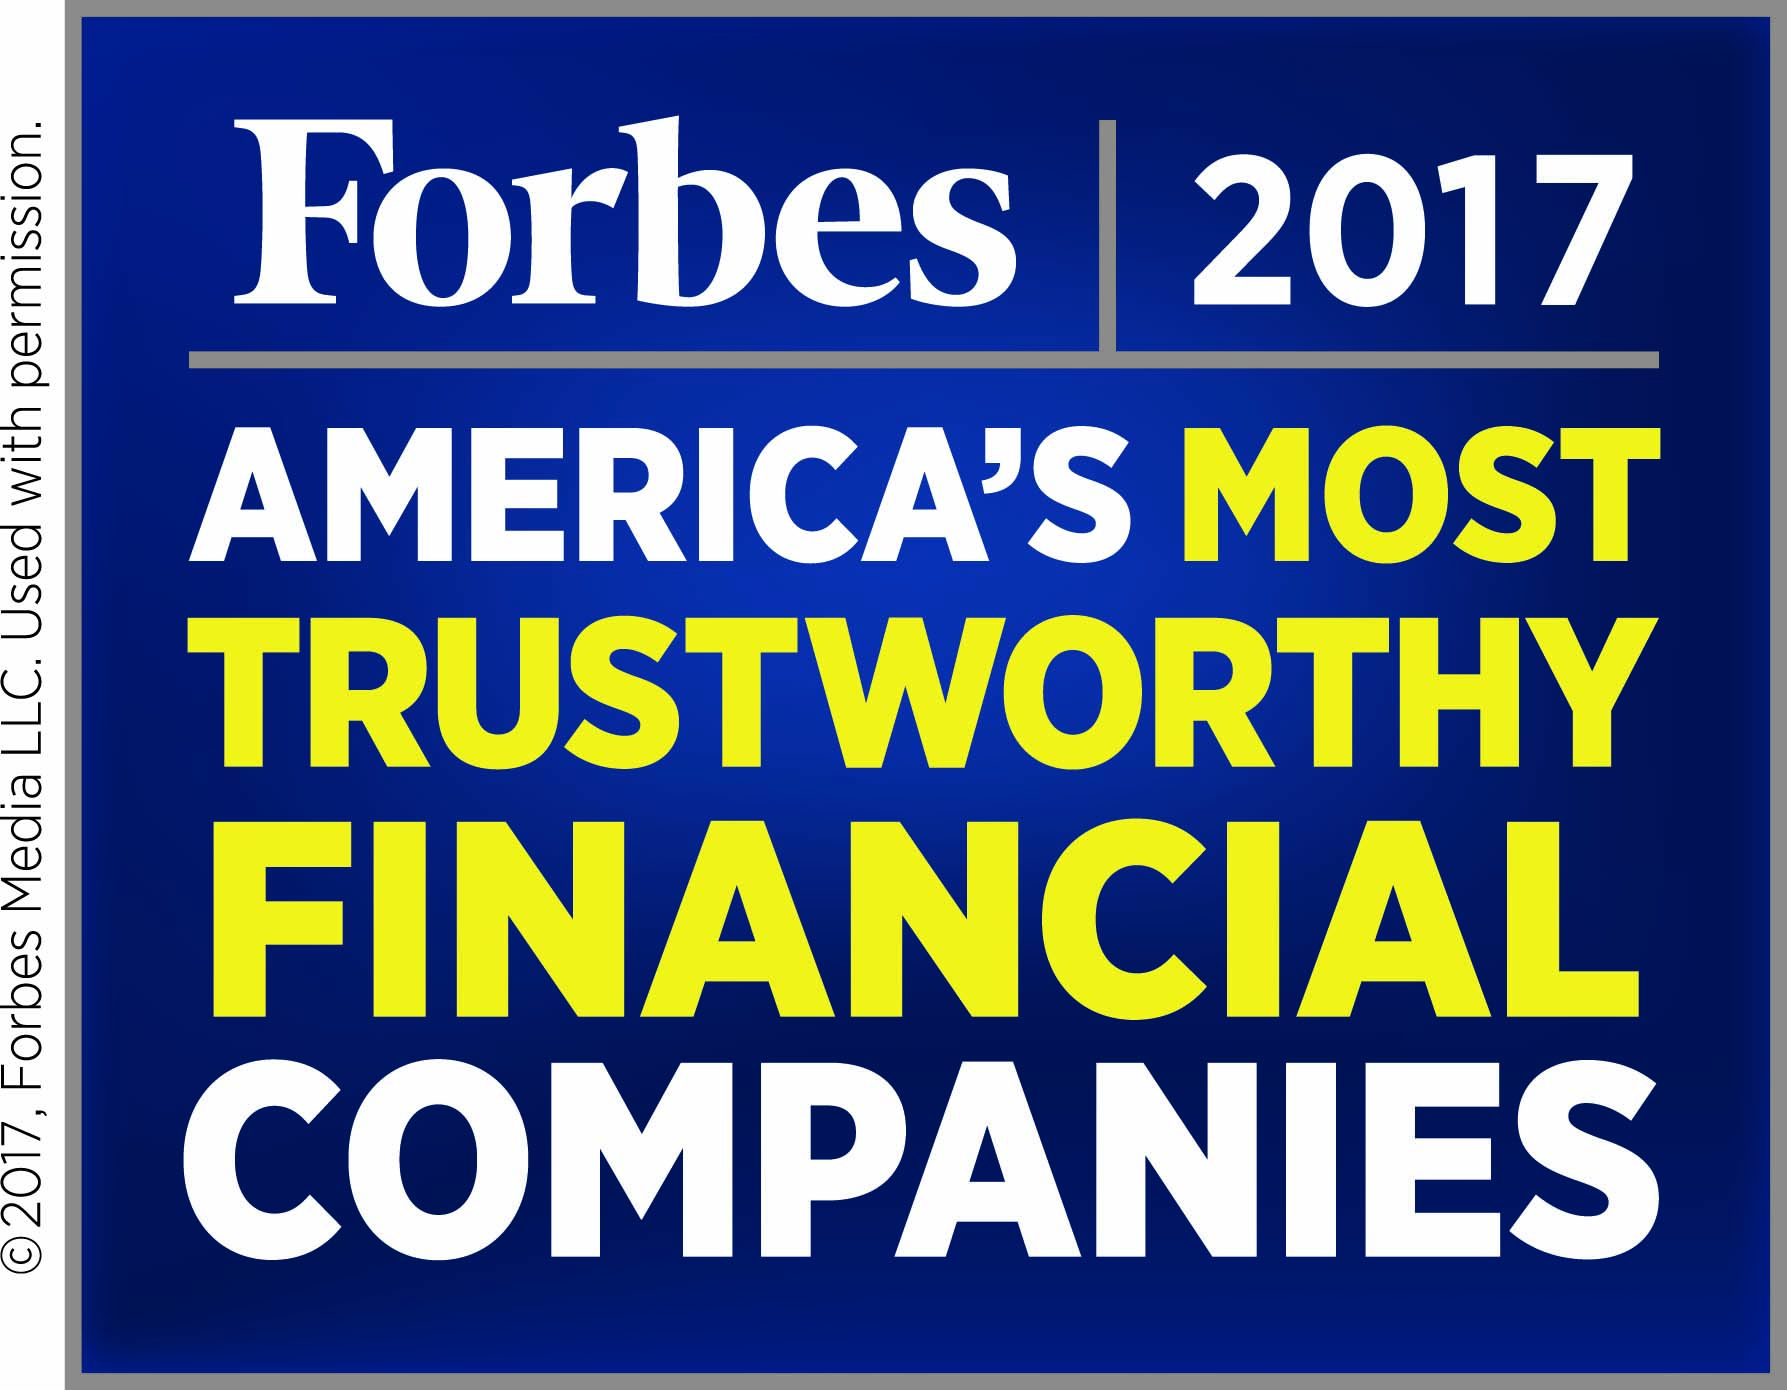 Forbes-2017-America-most-trustworth-financial-companies